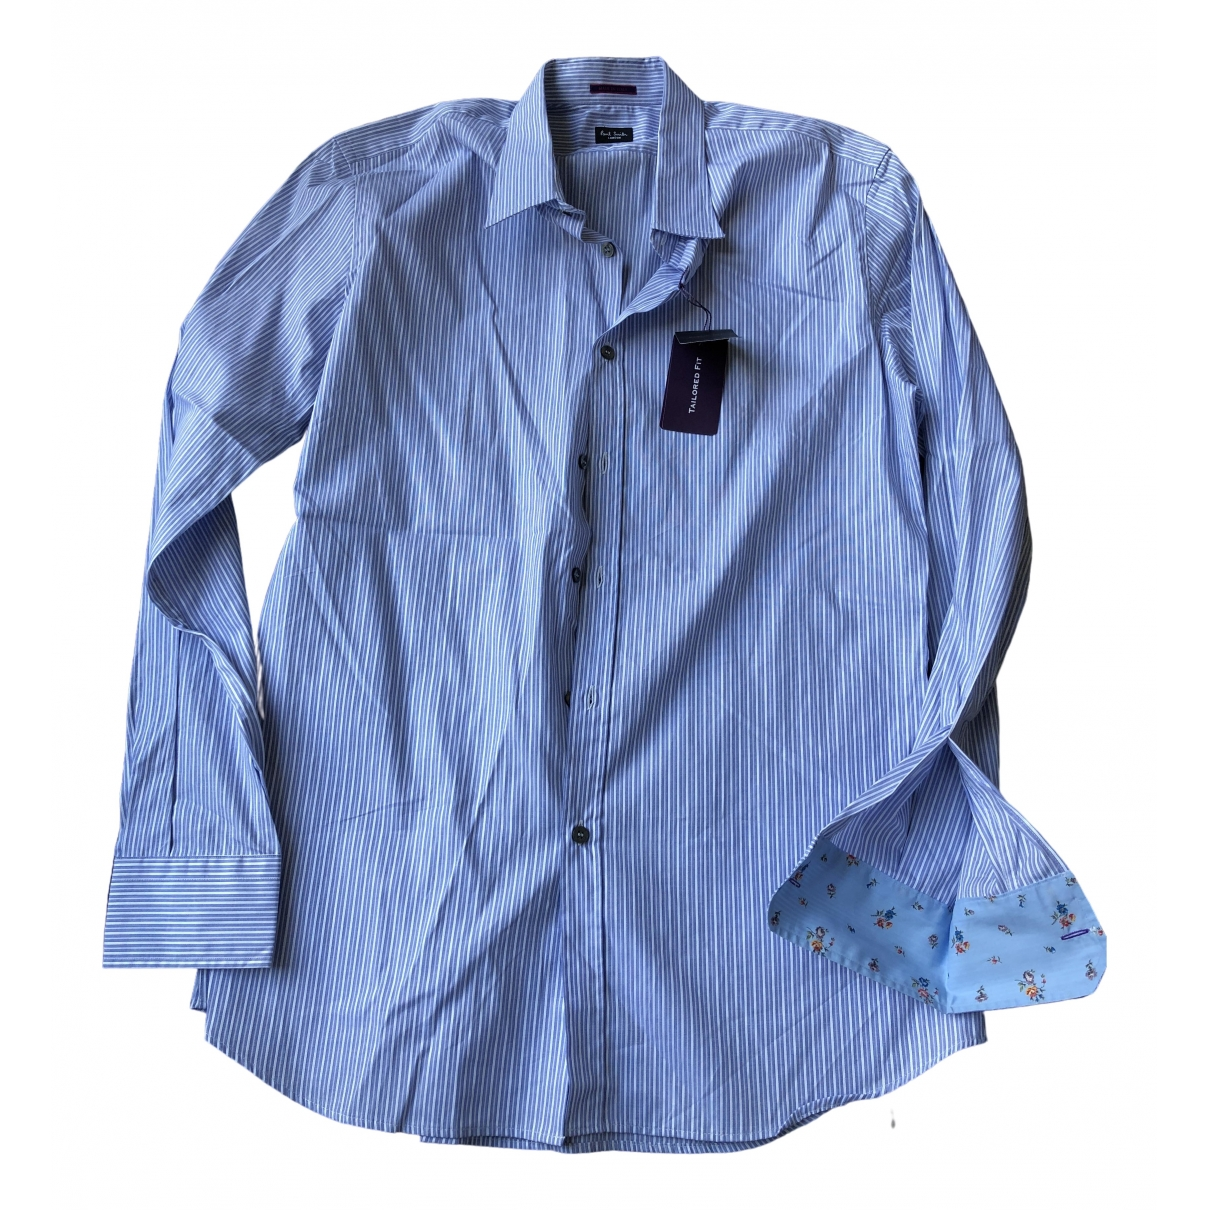 Paul Smith \N Blue Cotton Shirts for Men 43 EU (tour de cou / collar)